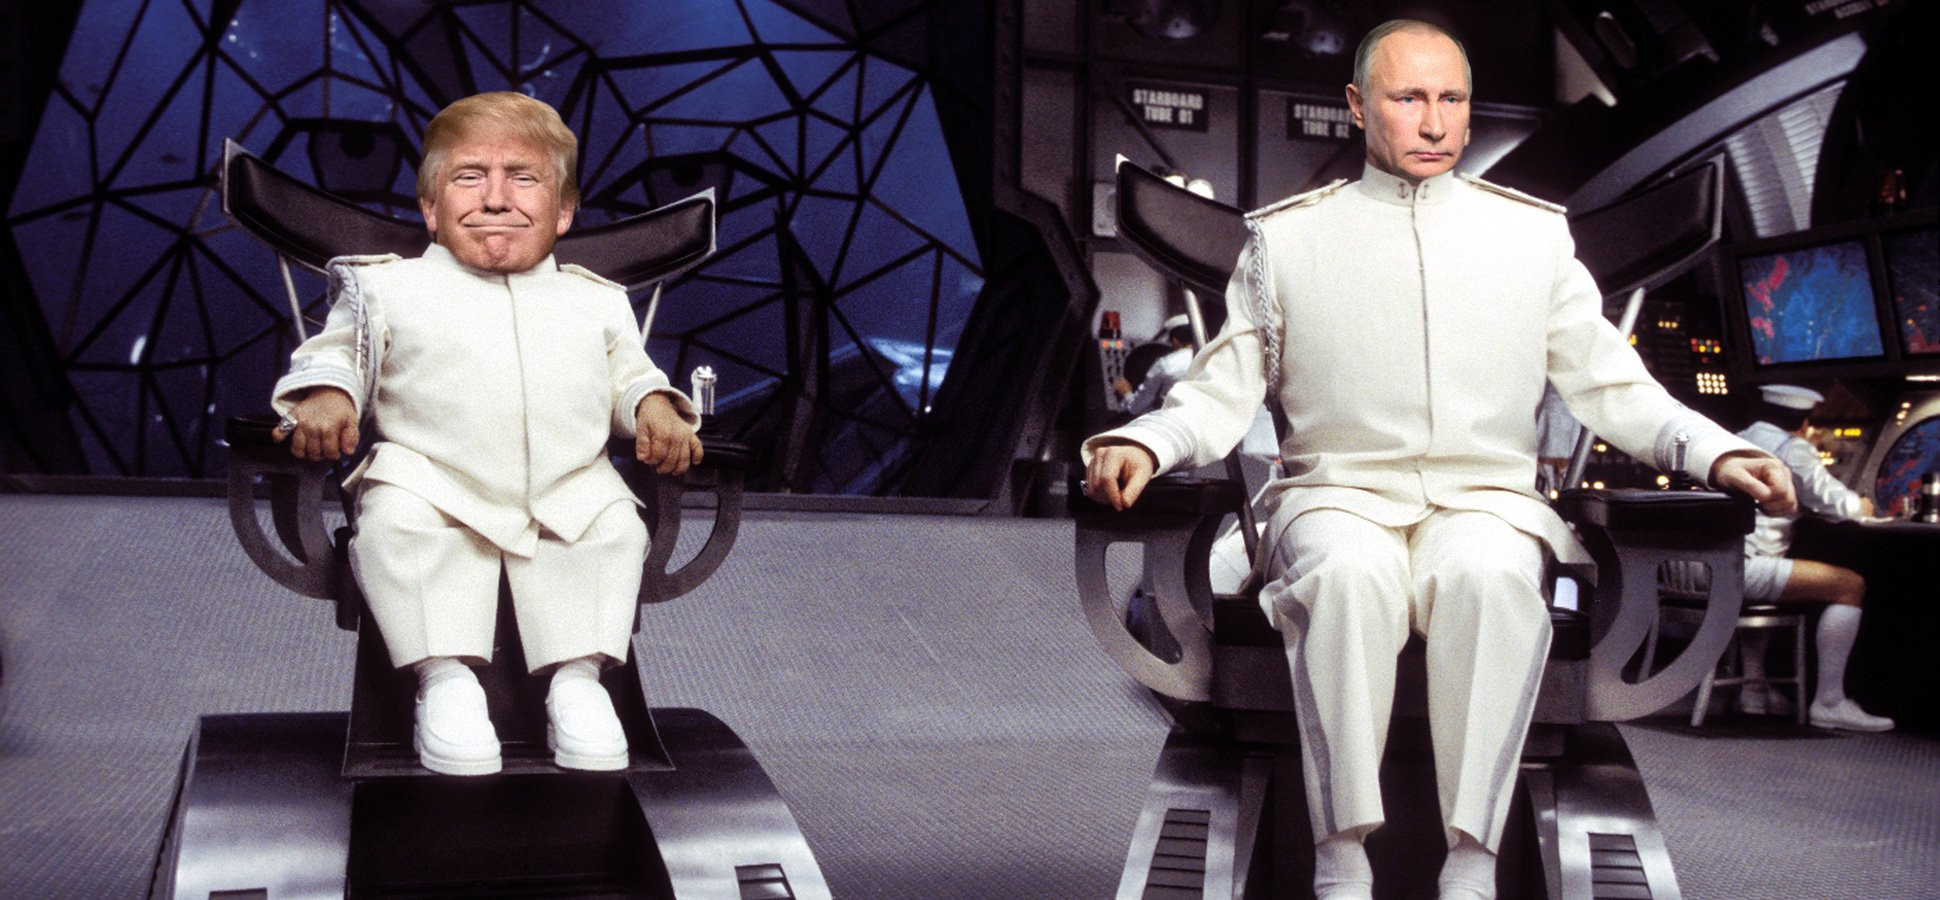 dr evil chair counter height folding chairs the real and mini me pics us politicsthe